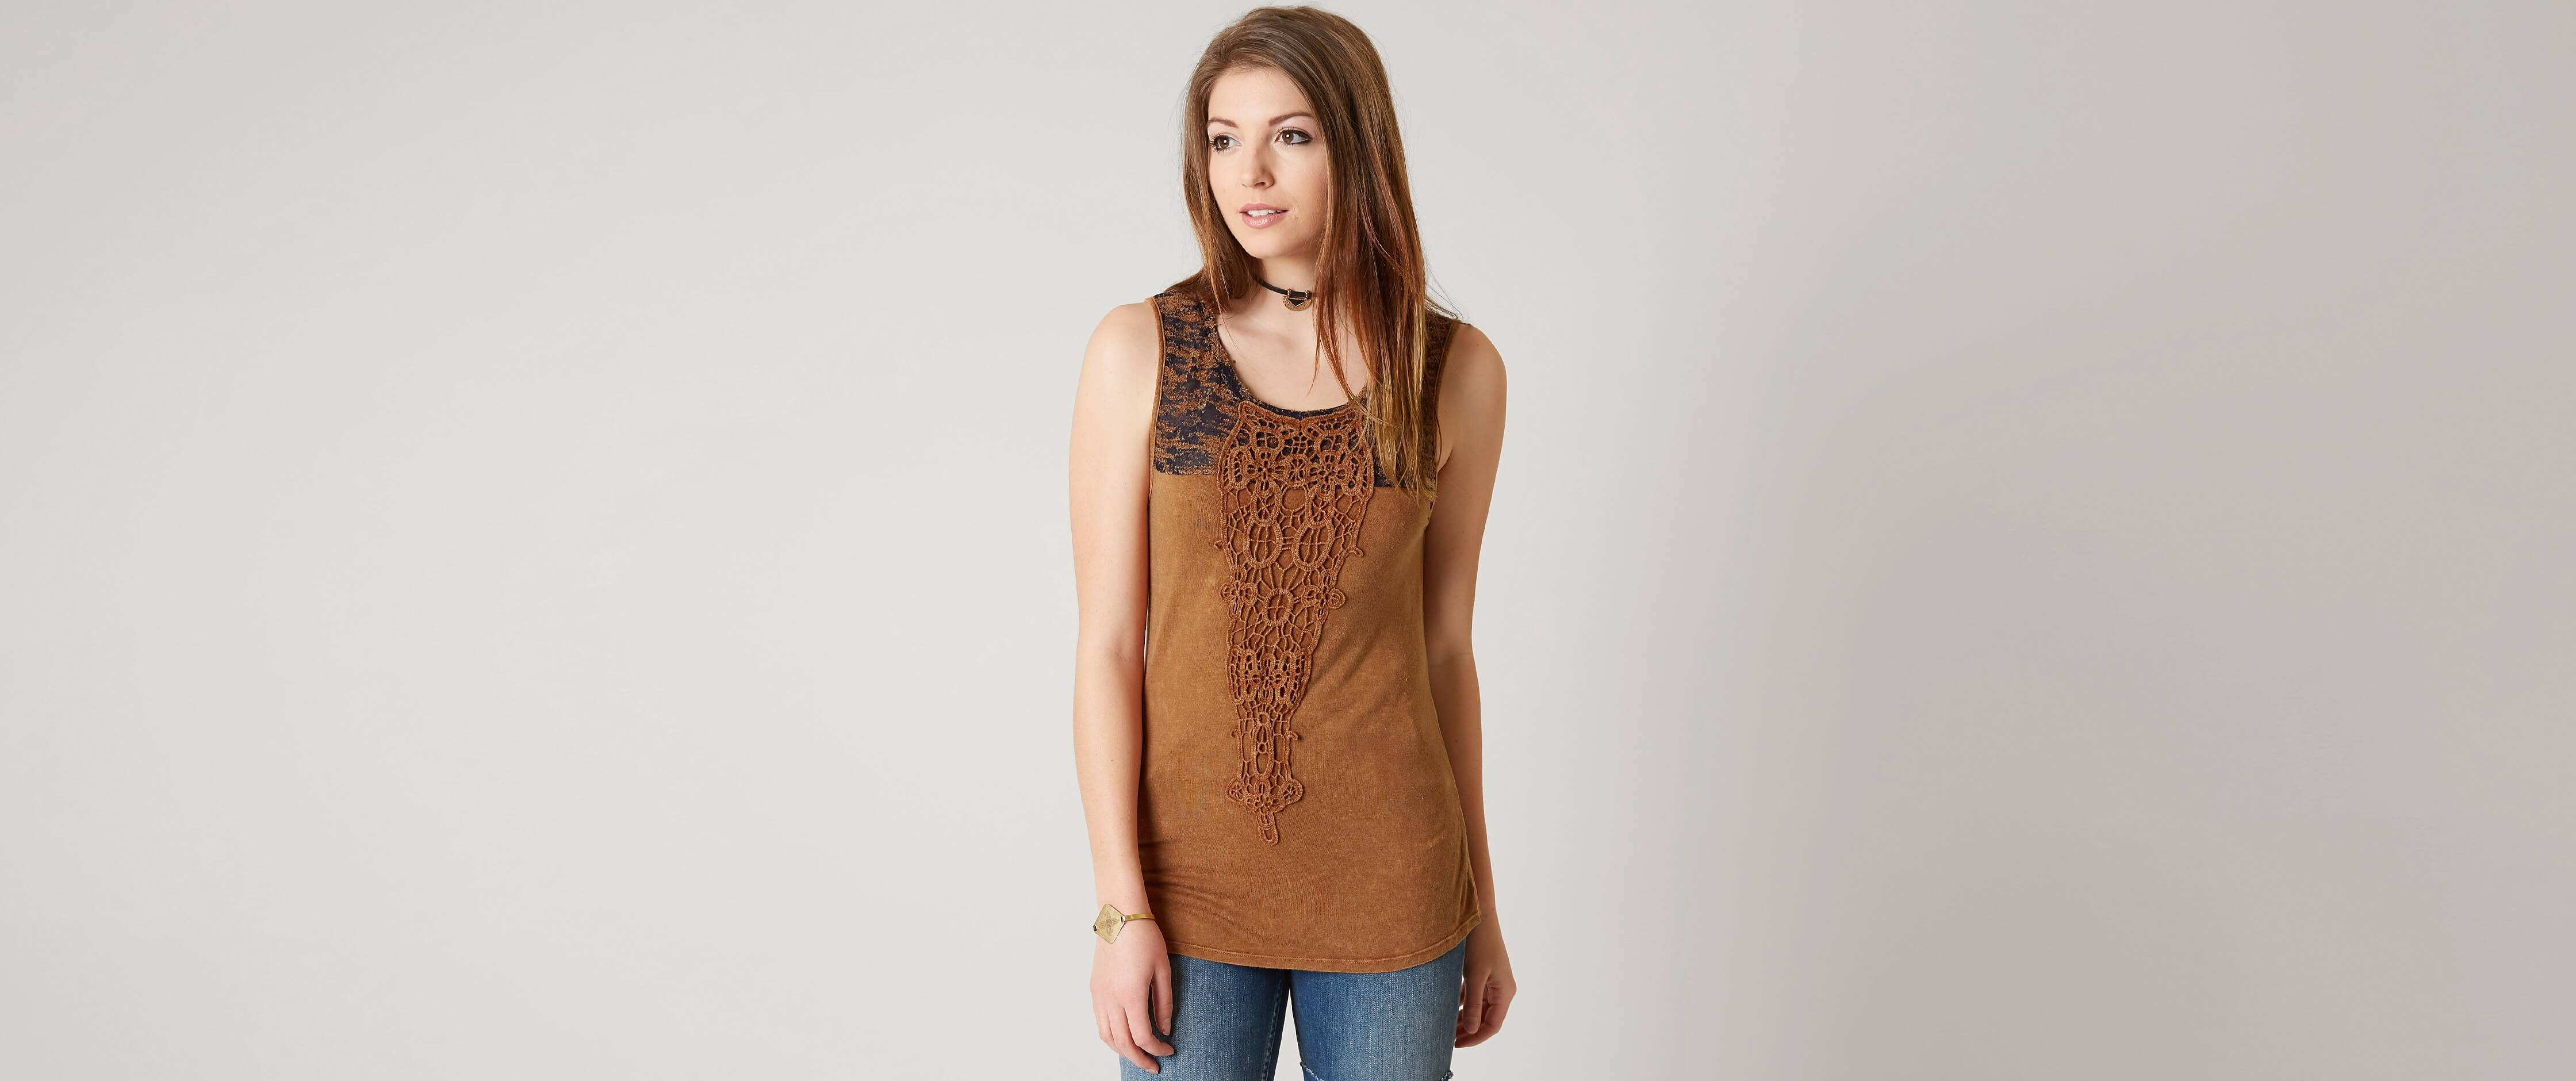 Gimmicks lace applique tank top women s tank tops in tan buckle